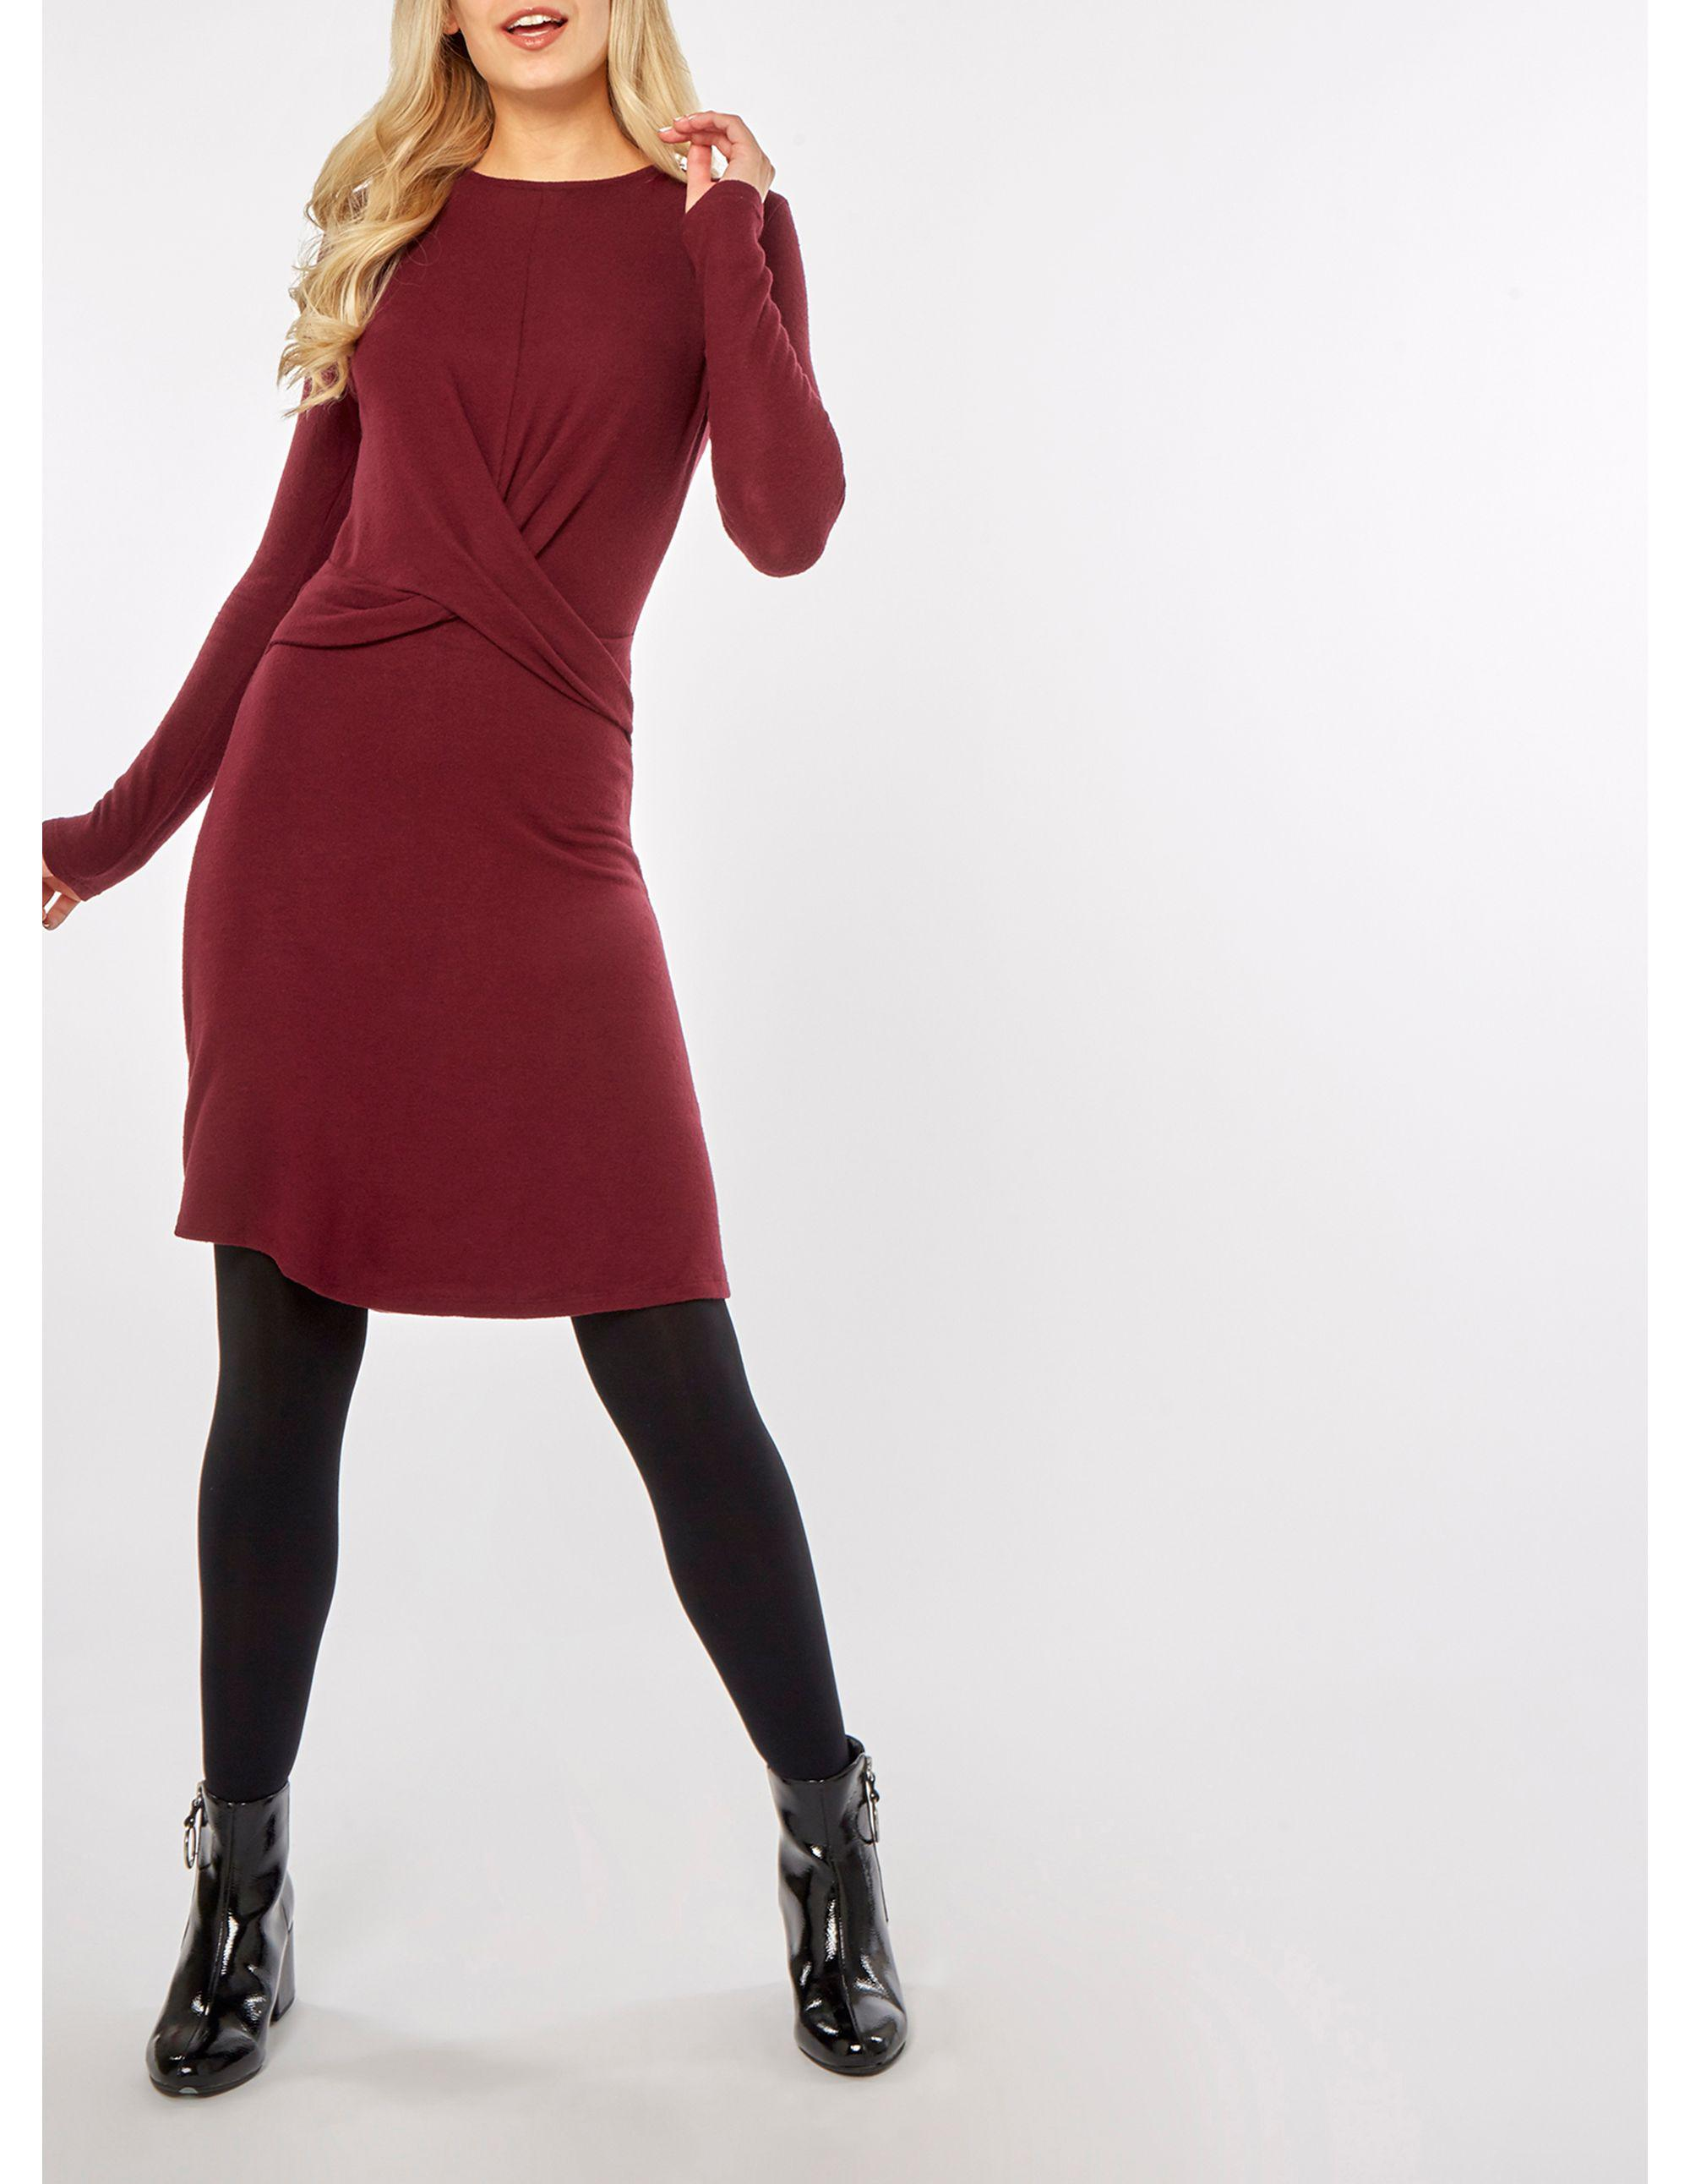 935251c365a5 Dorothy Perkins Berry Twist Front Shift Dress in Red - Lyst